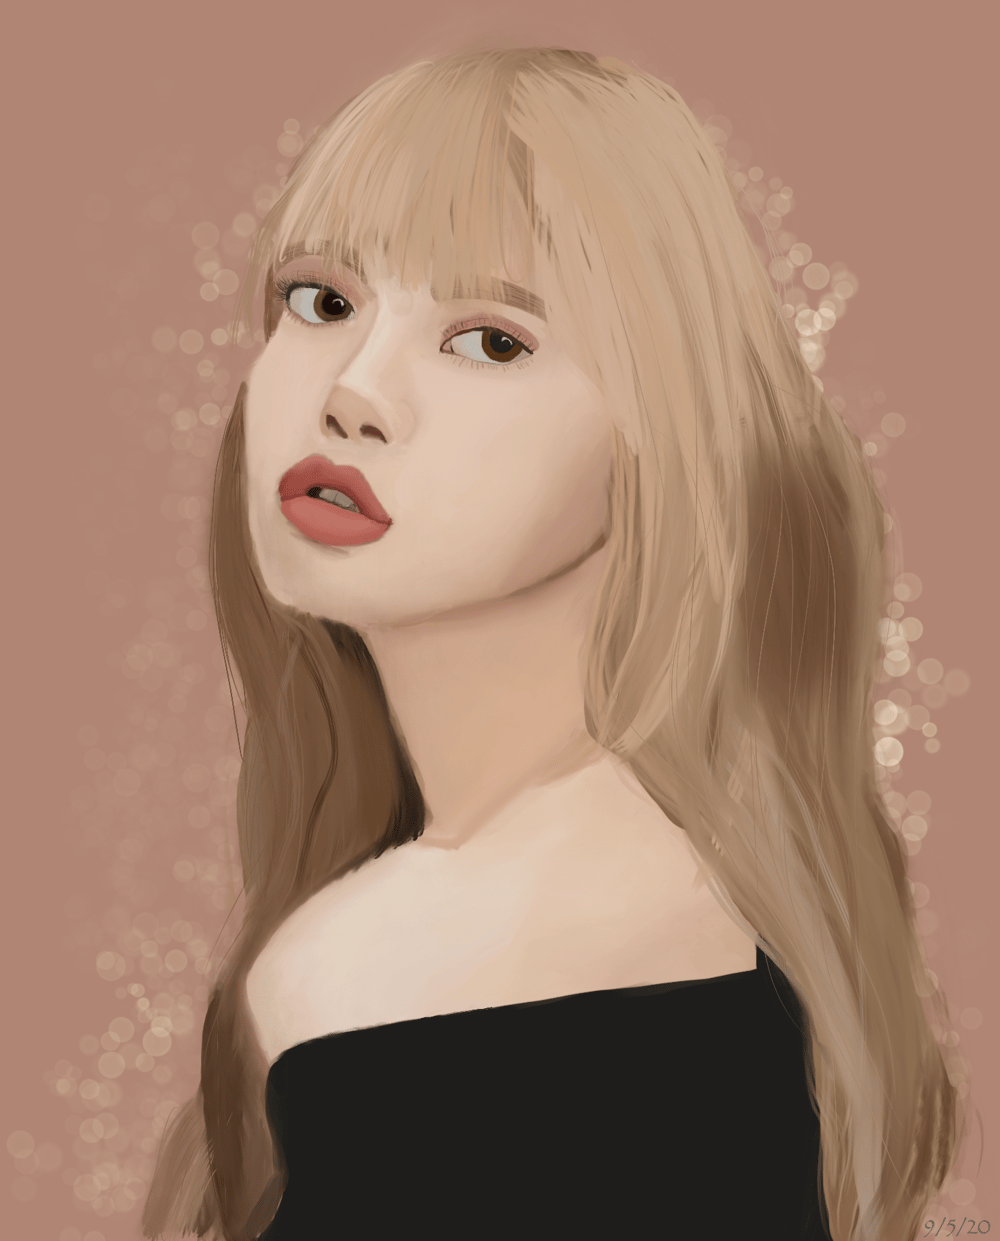 Blackpink's Lisa - My First Digital Drawing - image 1 - student project